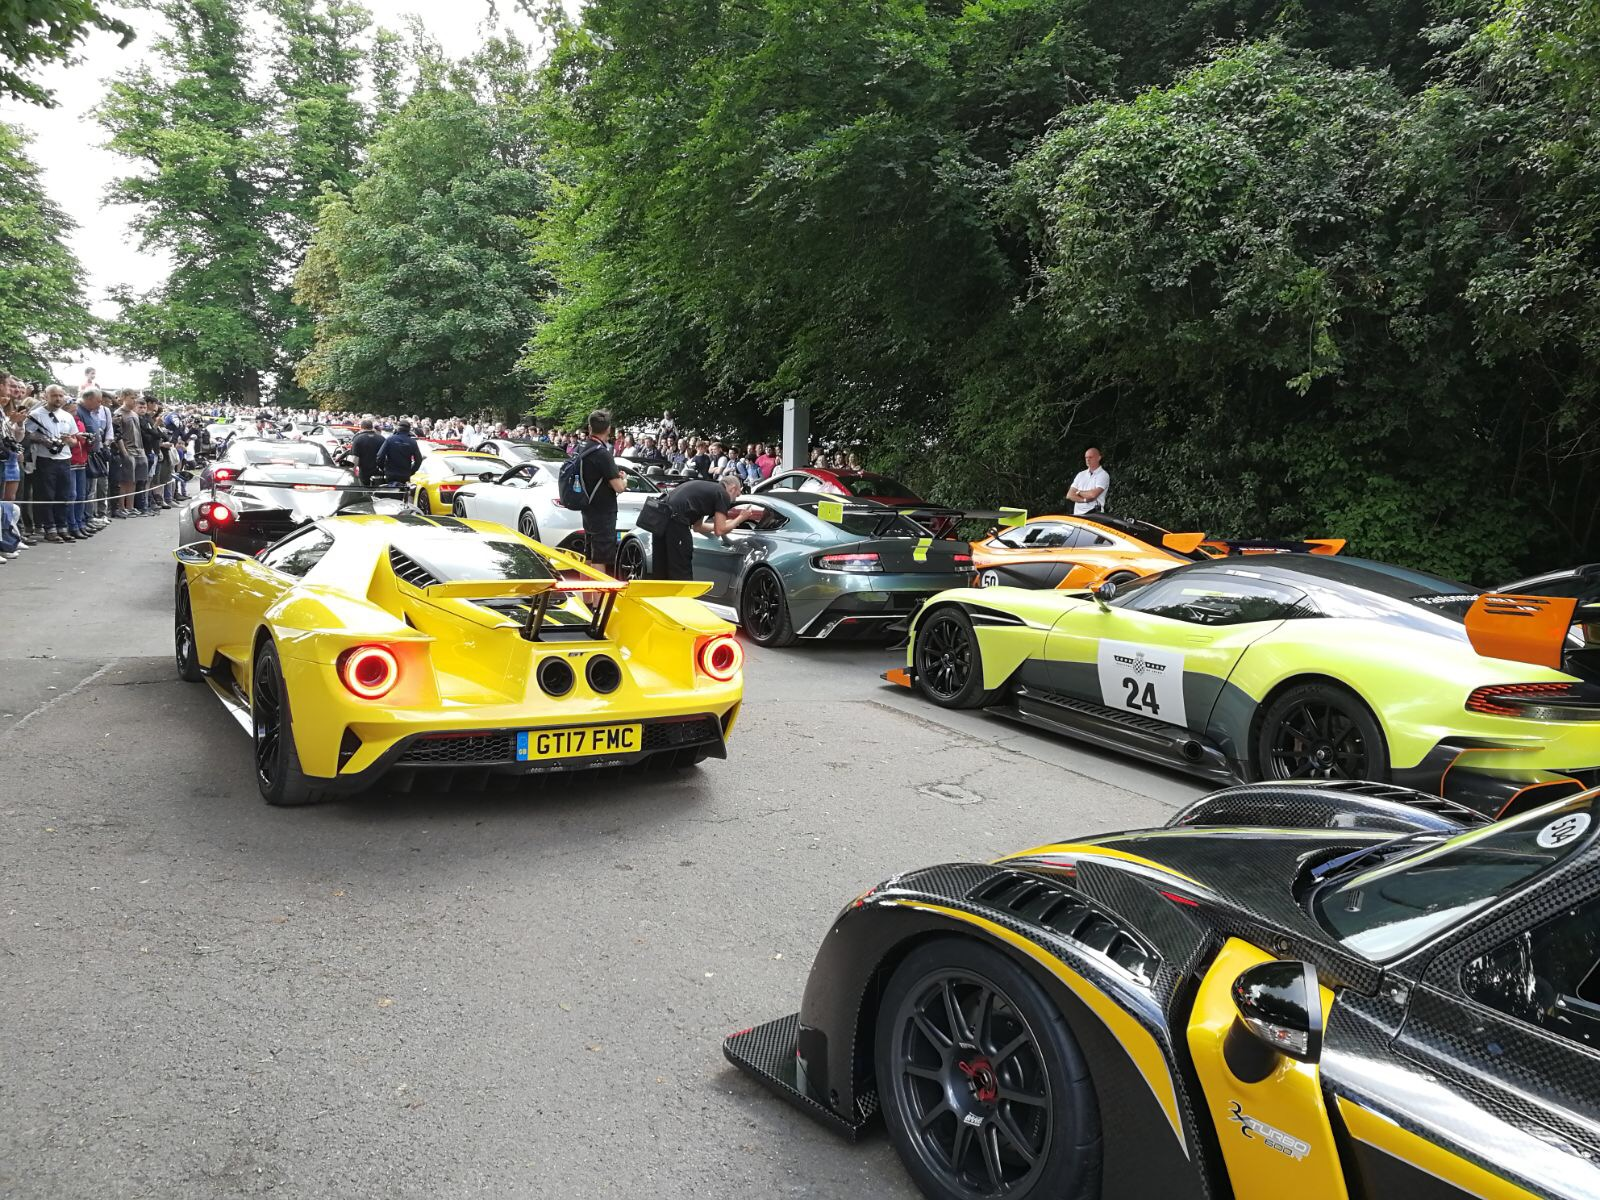 Ford Gt And Mustang Gt At The  Goodwood Festival Of Speed Img